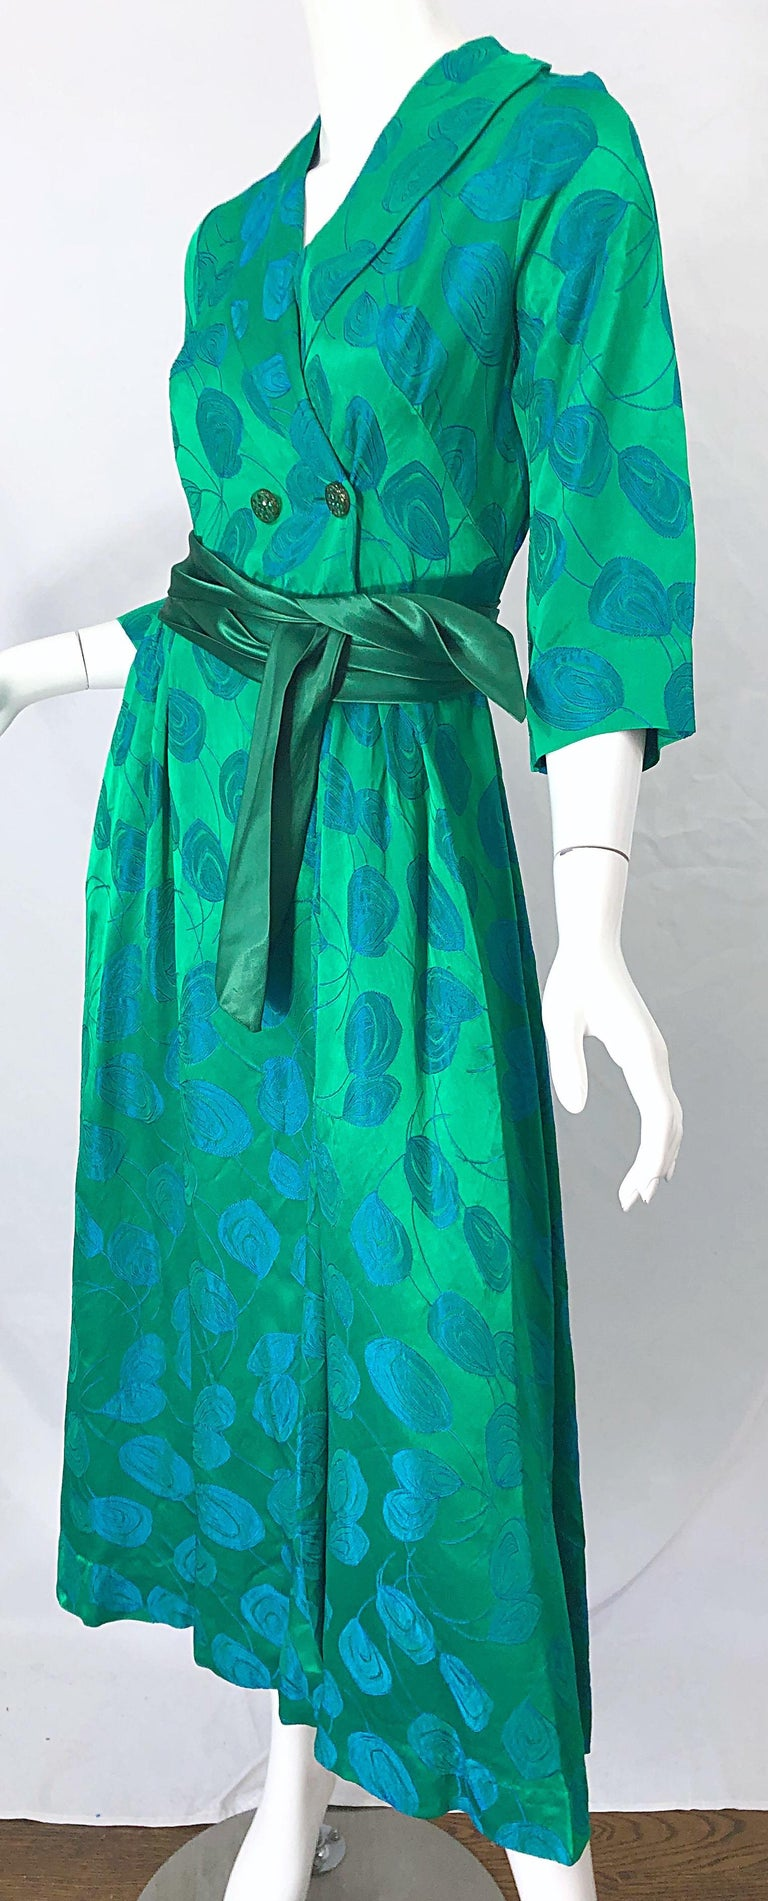 1950s Kelly Green + Blue Flower Print Rayon Rhinestone Vintage 50s Wrap Dress For Sale 6